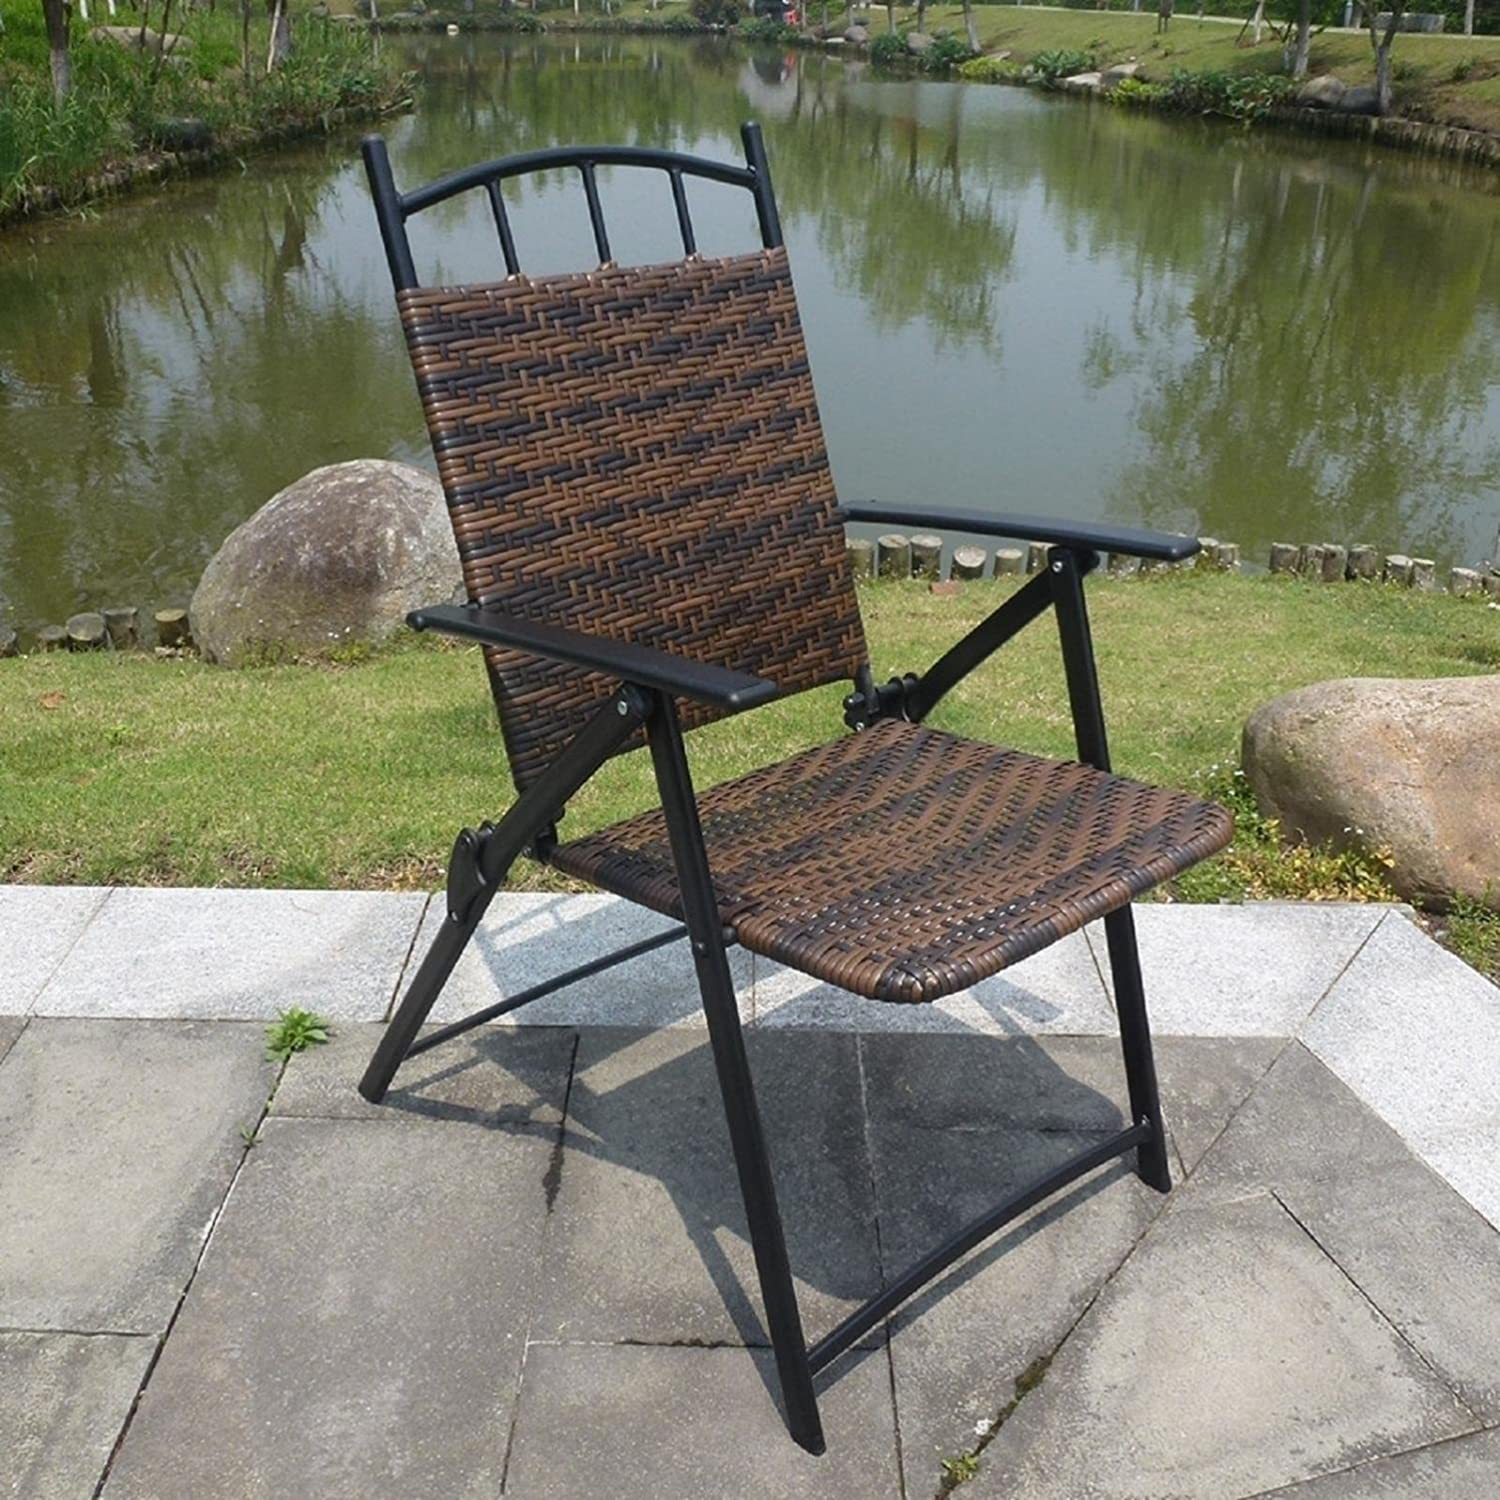 JUIANG Folding Chair Garden Rattan Back Rest Portable Outdoor Leisure Farm Balcony Park Iron Wrought Iron Chairs LoadBearing150Kg